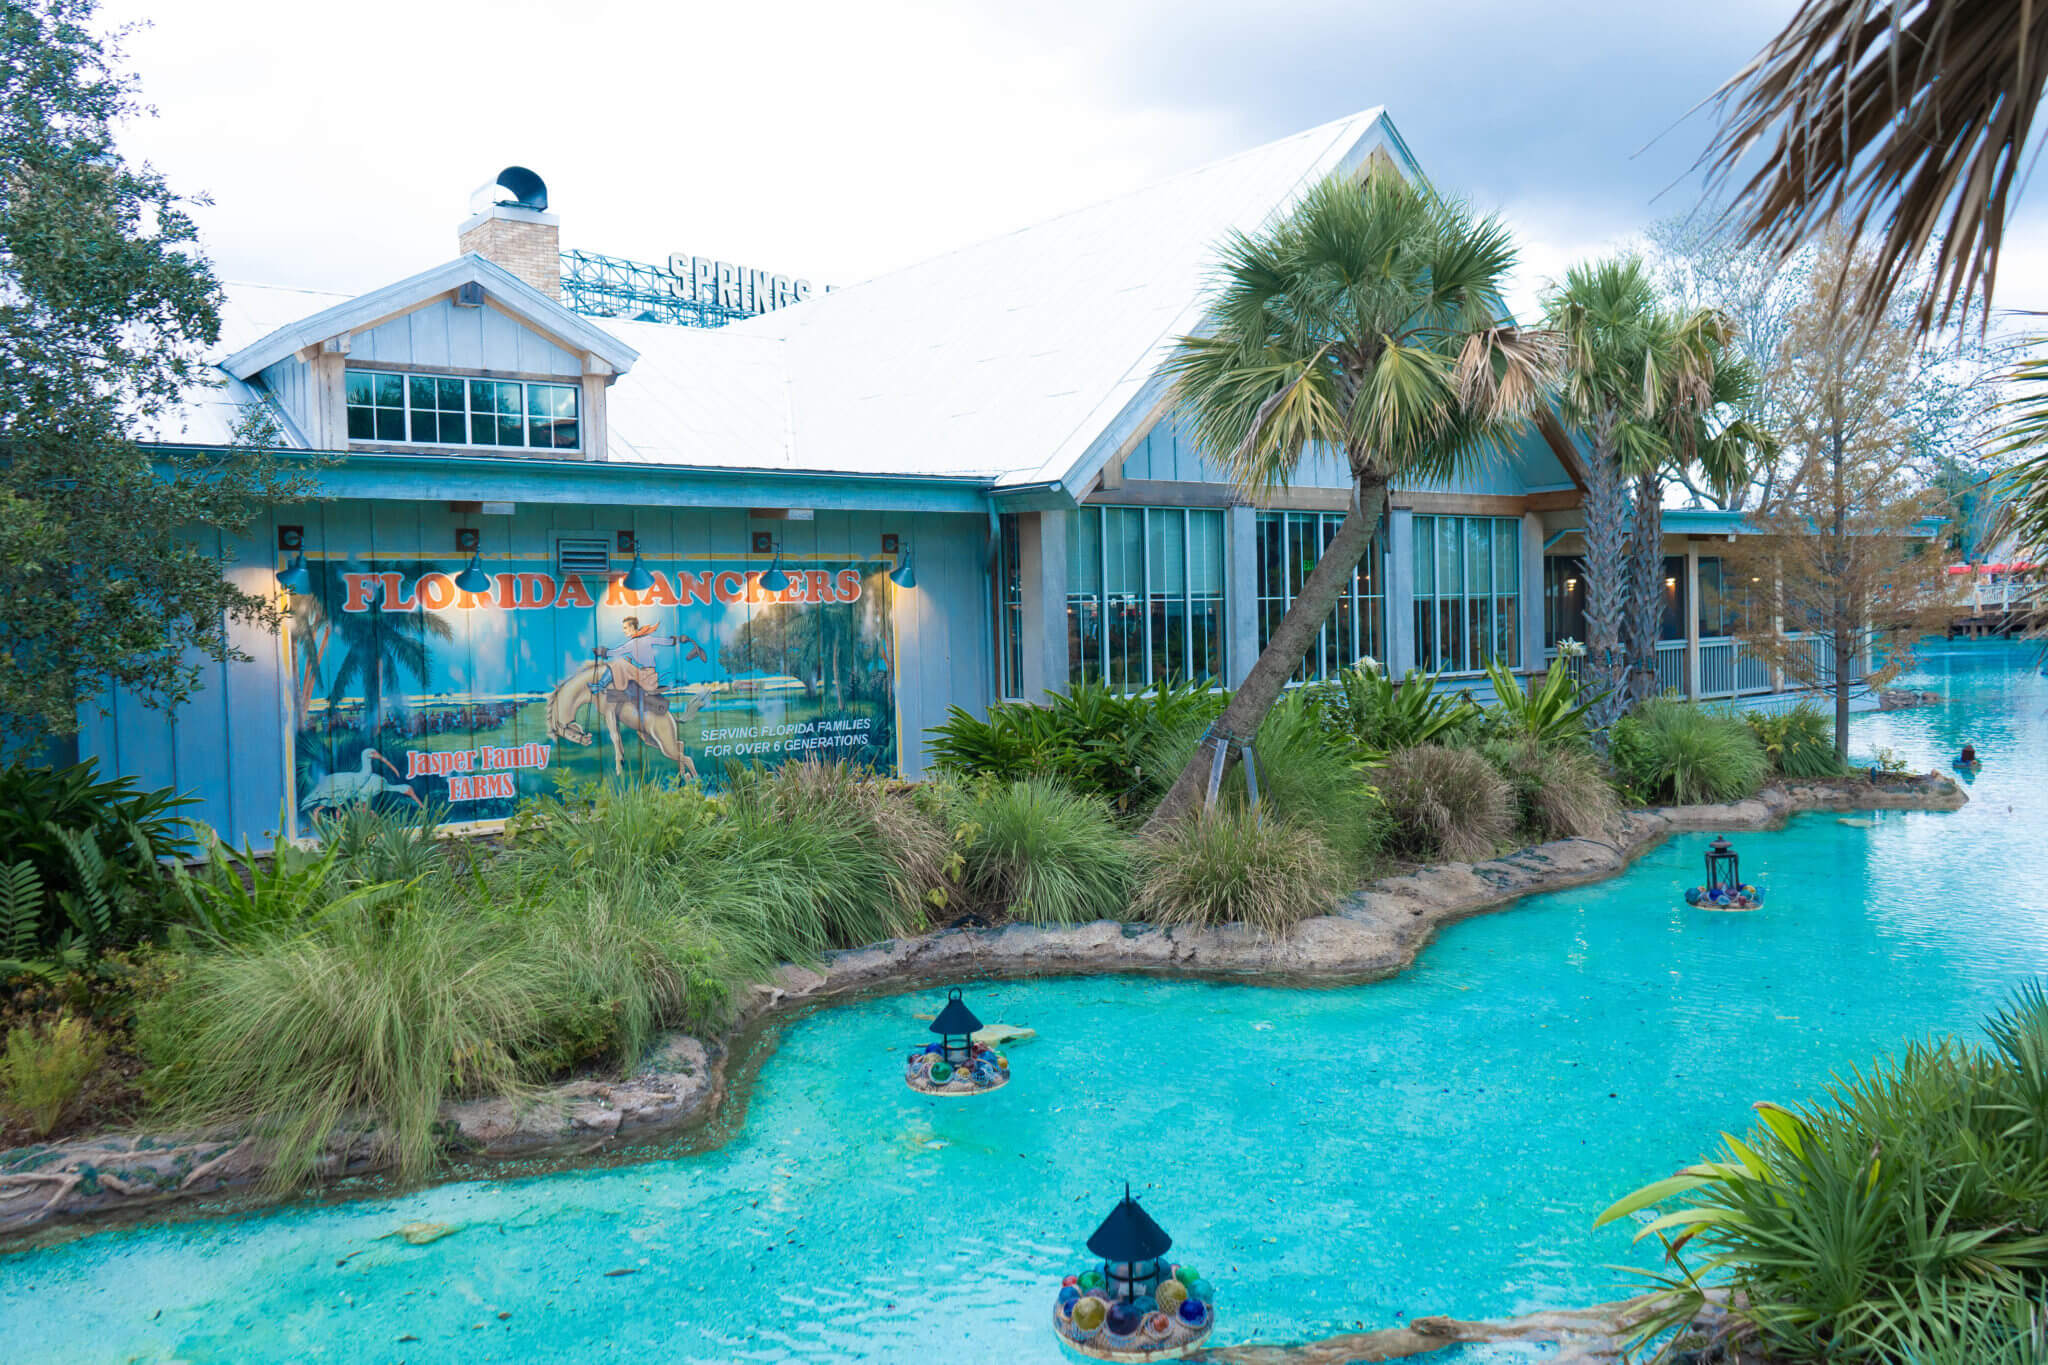 Homecomin' building with river at Disney Springs in Disney World